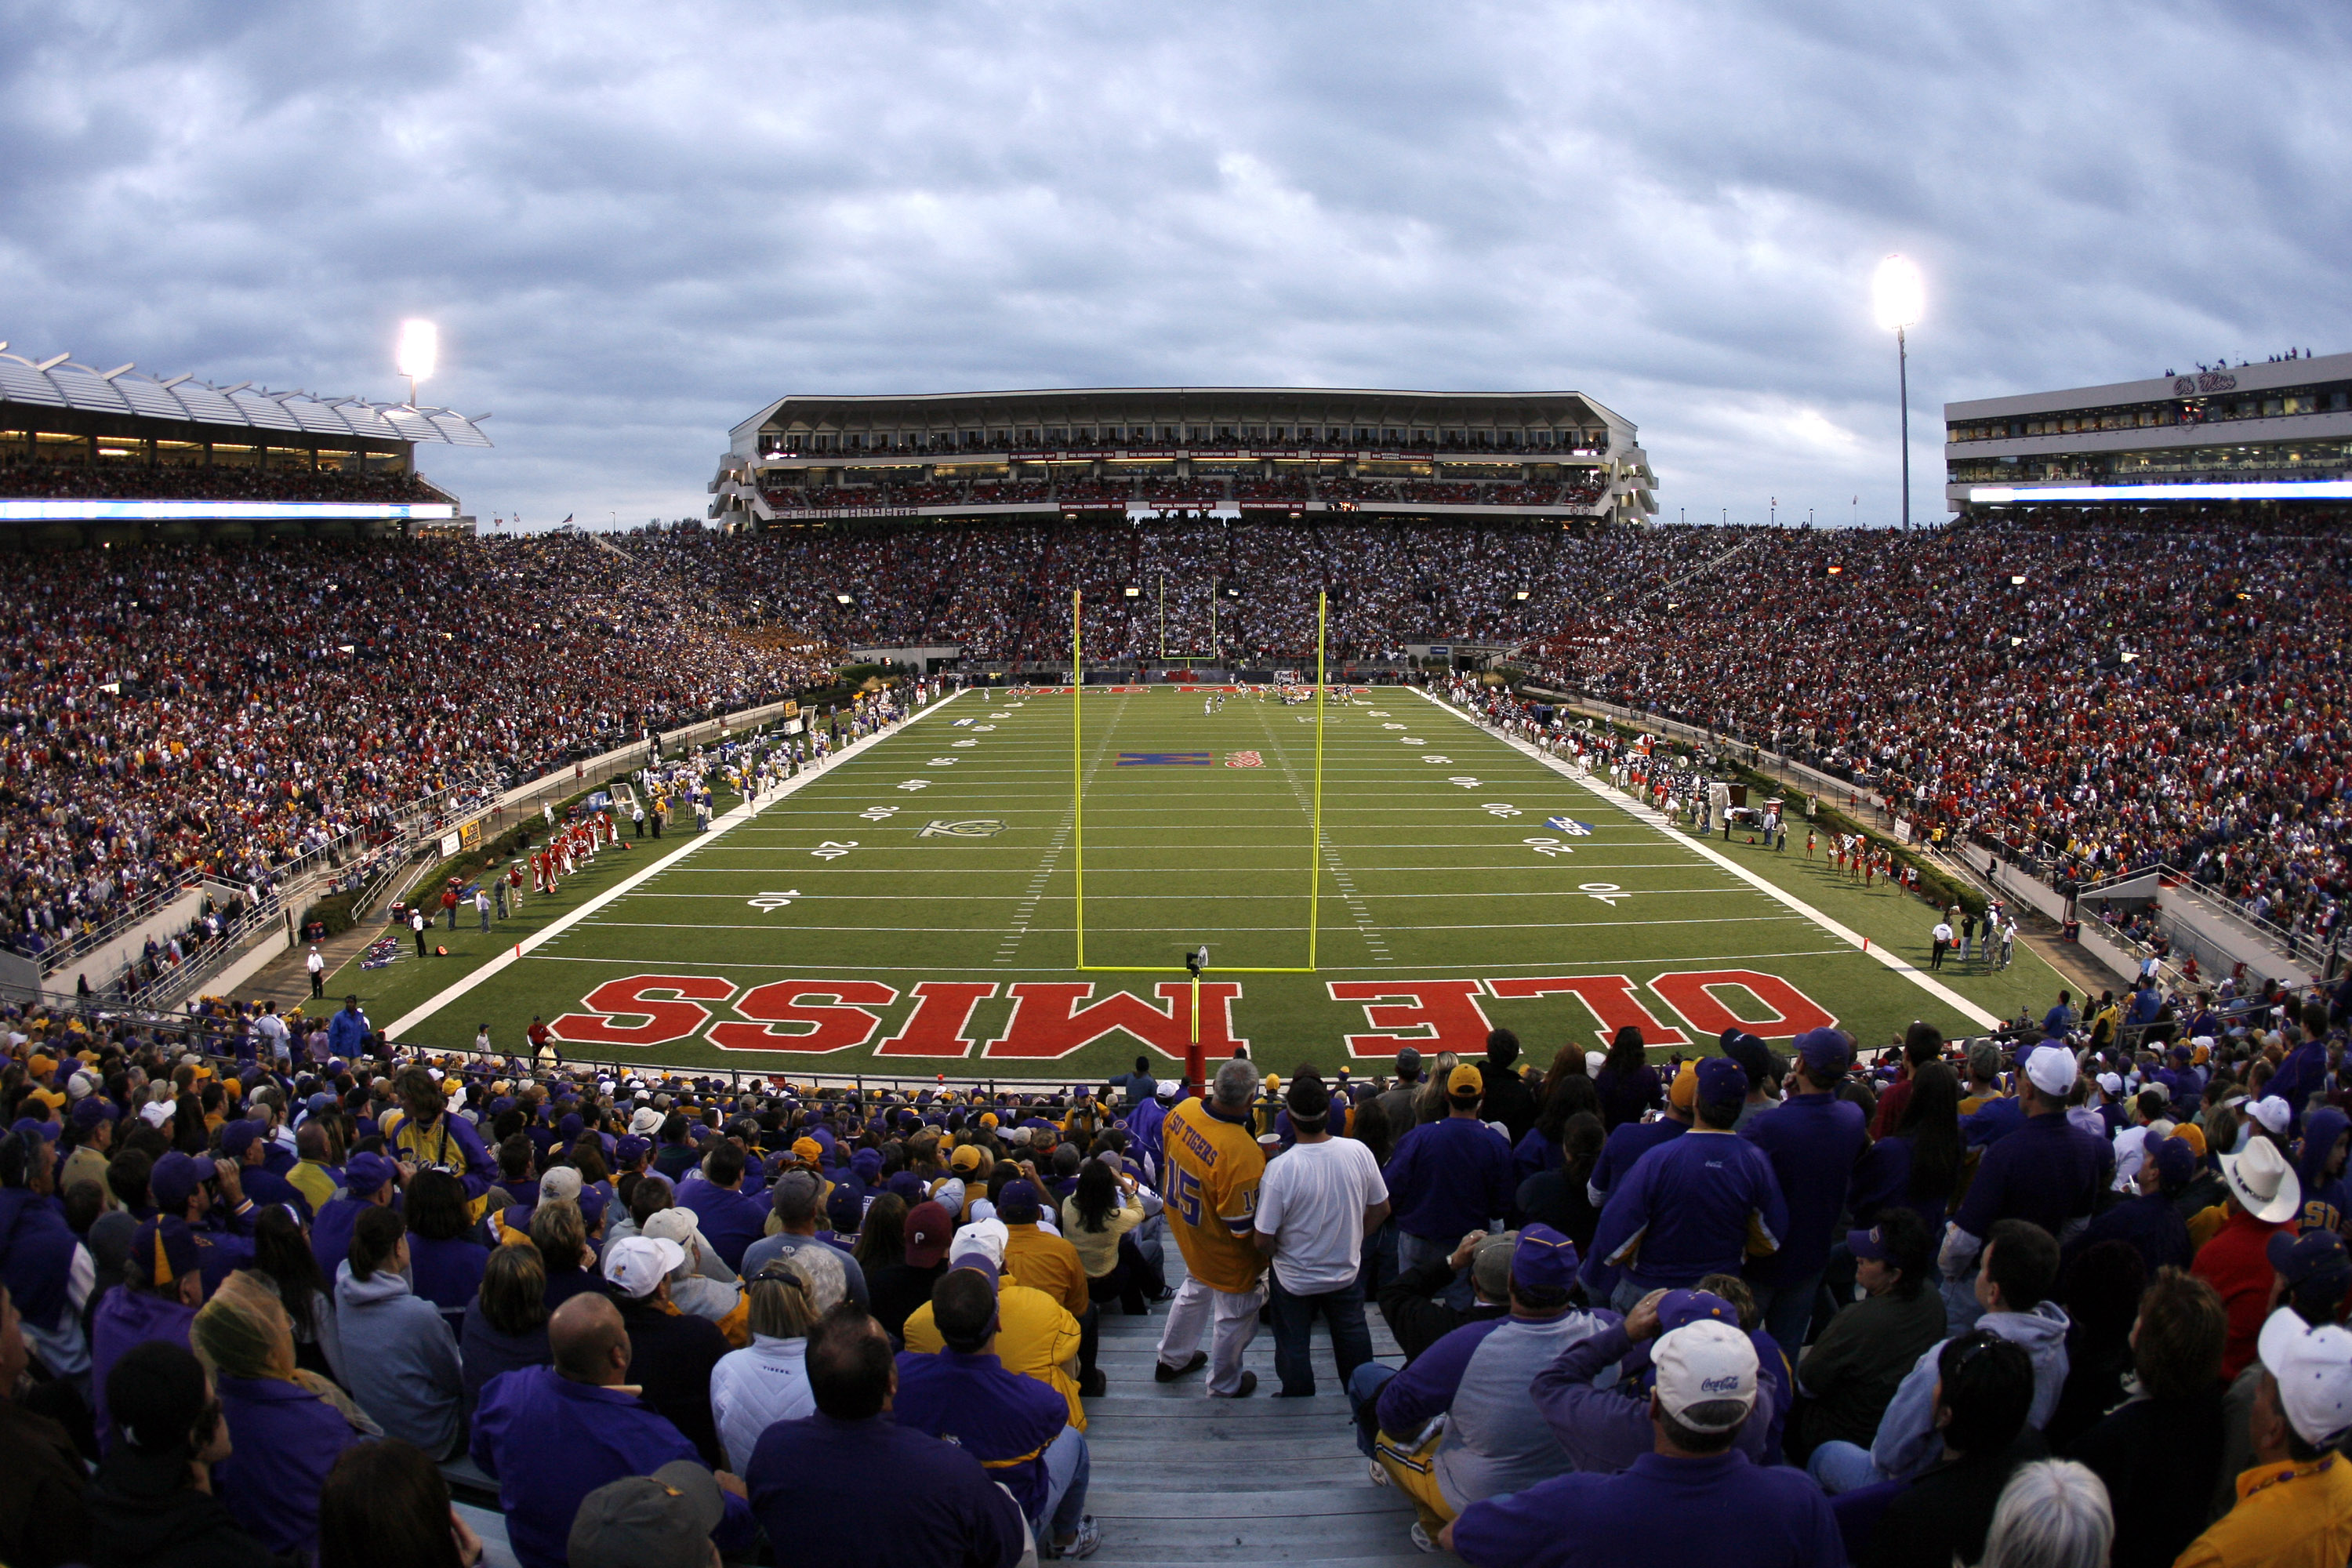 OXFORD, MS - NOVEMBER 17:  Fans watch the game between the LSU Tigers and the Mississippi Rebels at Vaught-Hemingway Stadium at Hollingsworth Field November 17, 2007 in Oxford, Mississippi. LSU beat Mississippi 41-24.  (Photo by Joe Murphy/Getty Images)